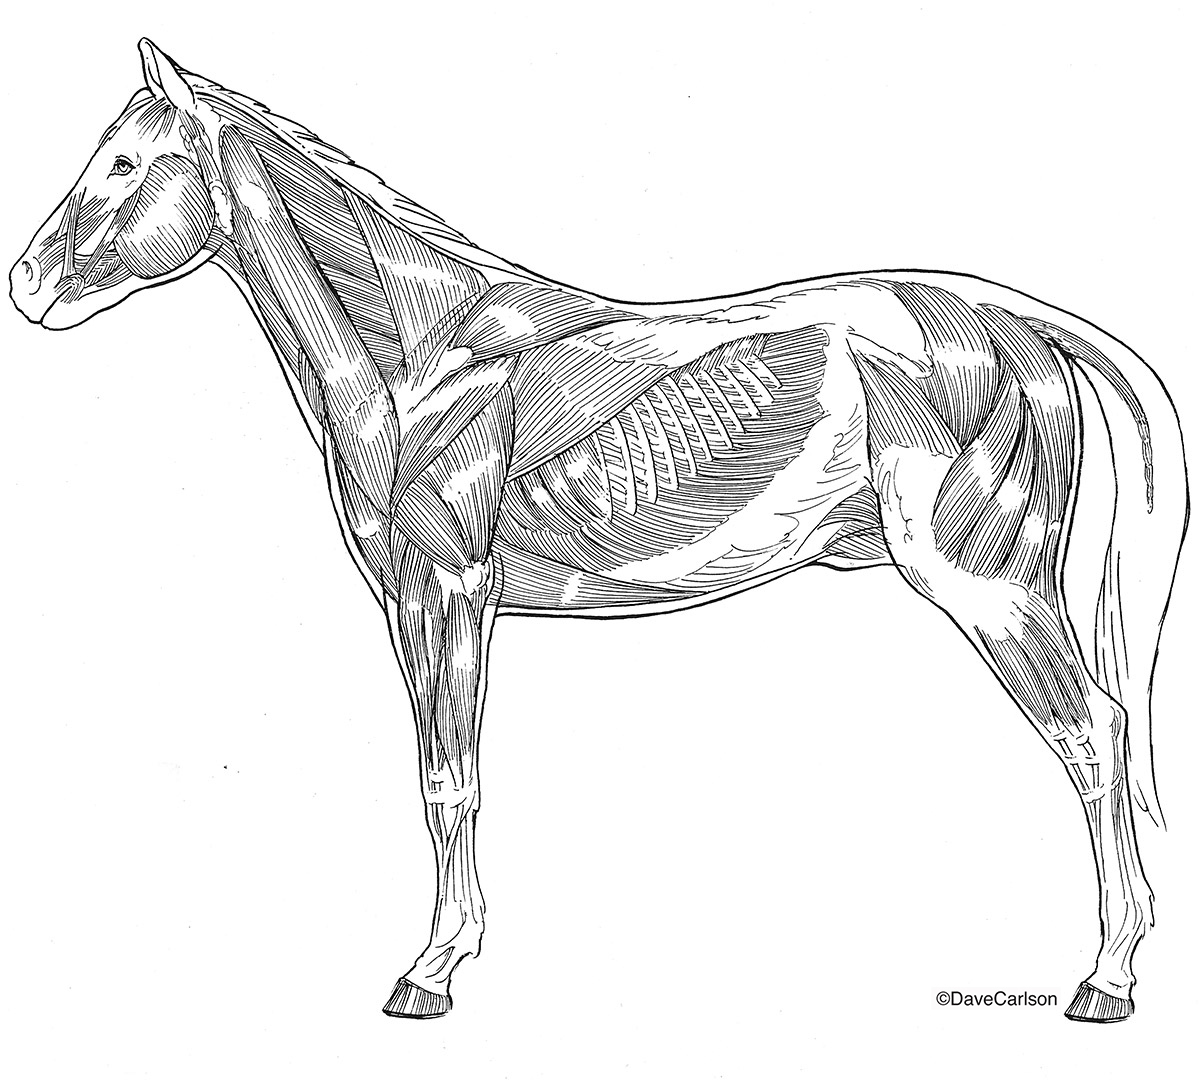 Illustration, lateral view, superficial, horse, equine, musculature, muscles, photo